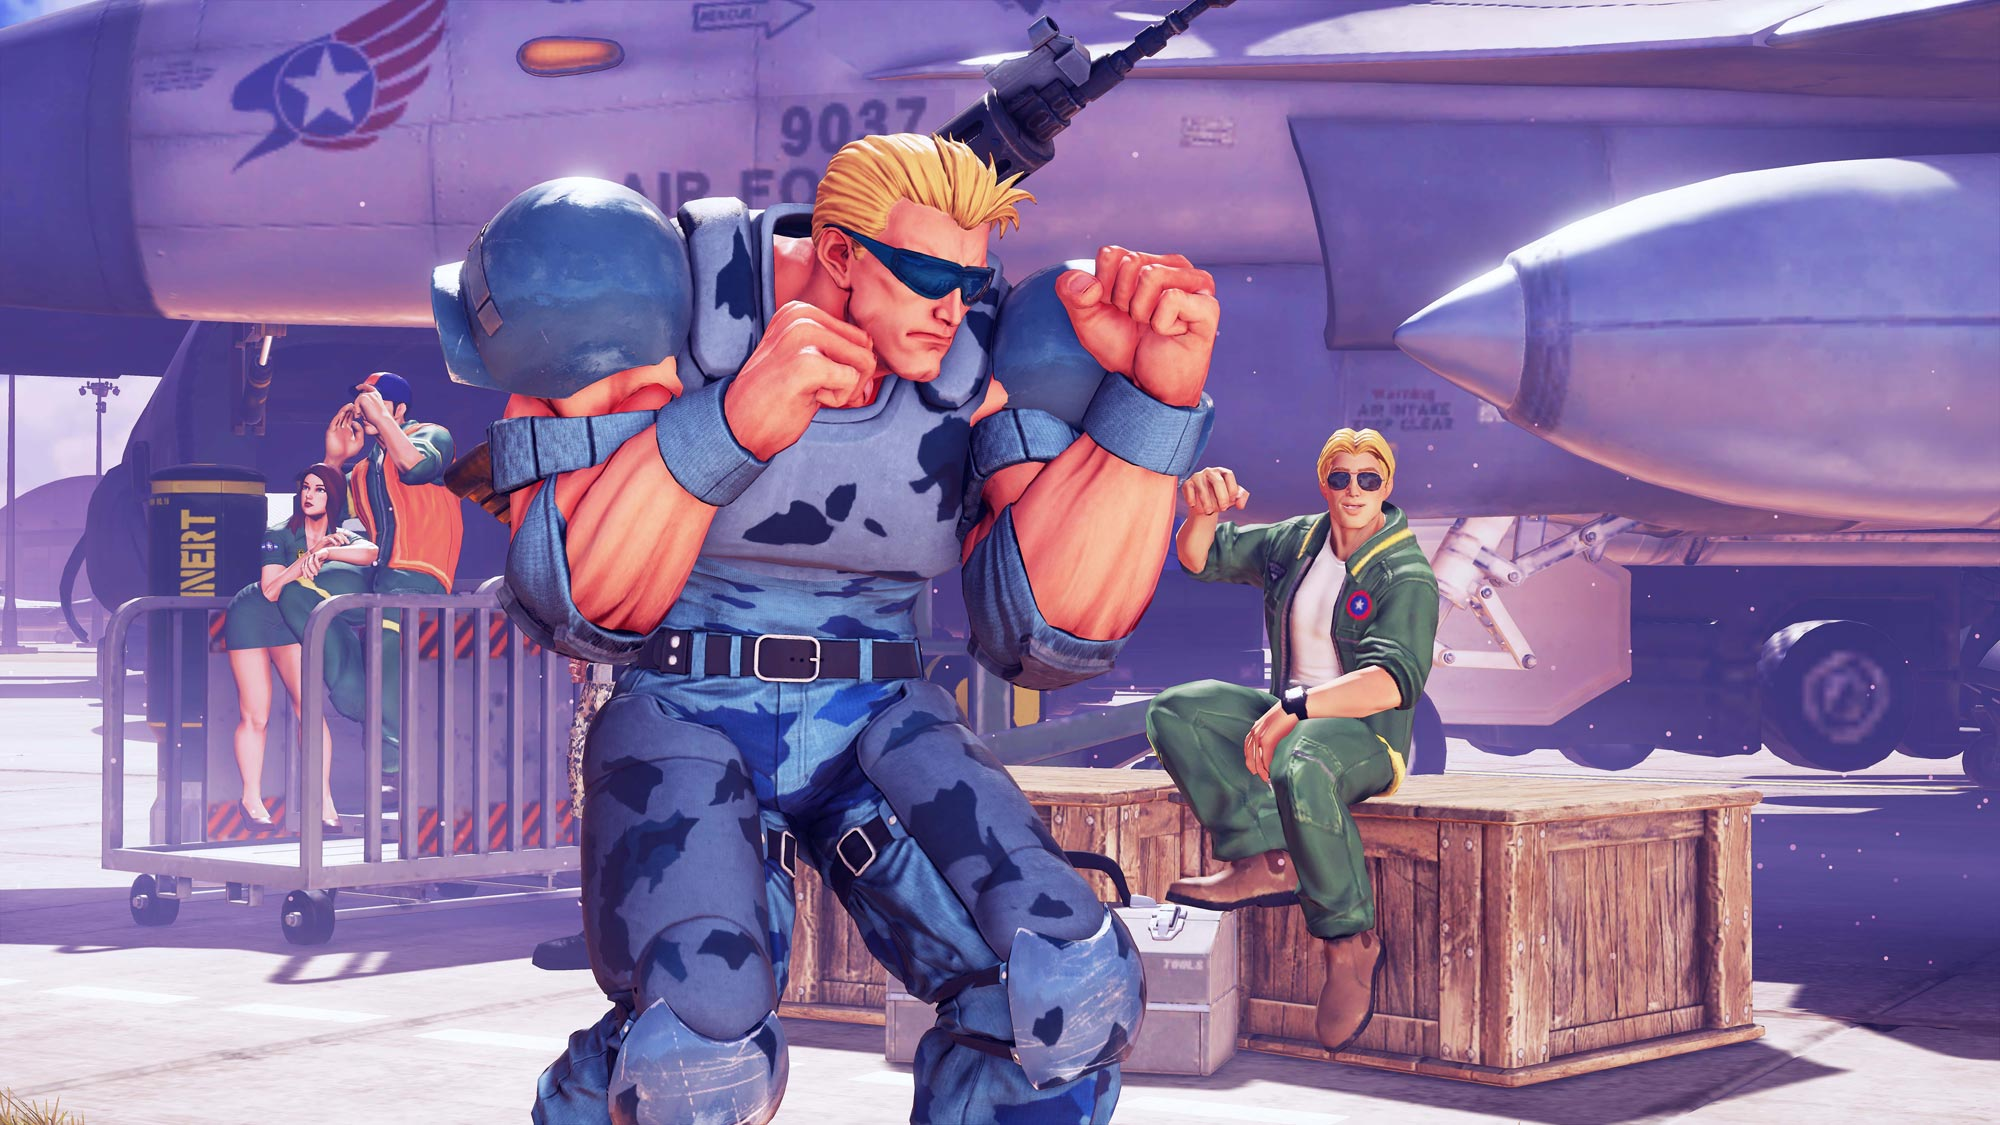 Guile Cross over costume - The Nameless Super Soldier 1 out of 7 image gallery